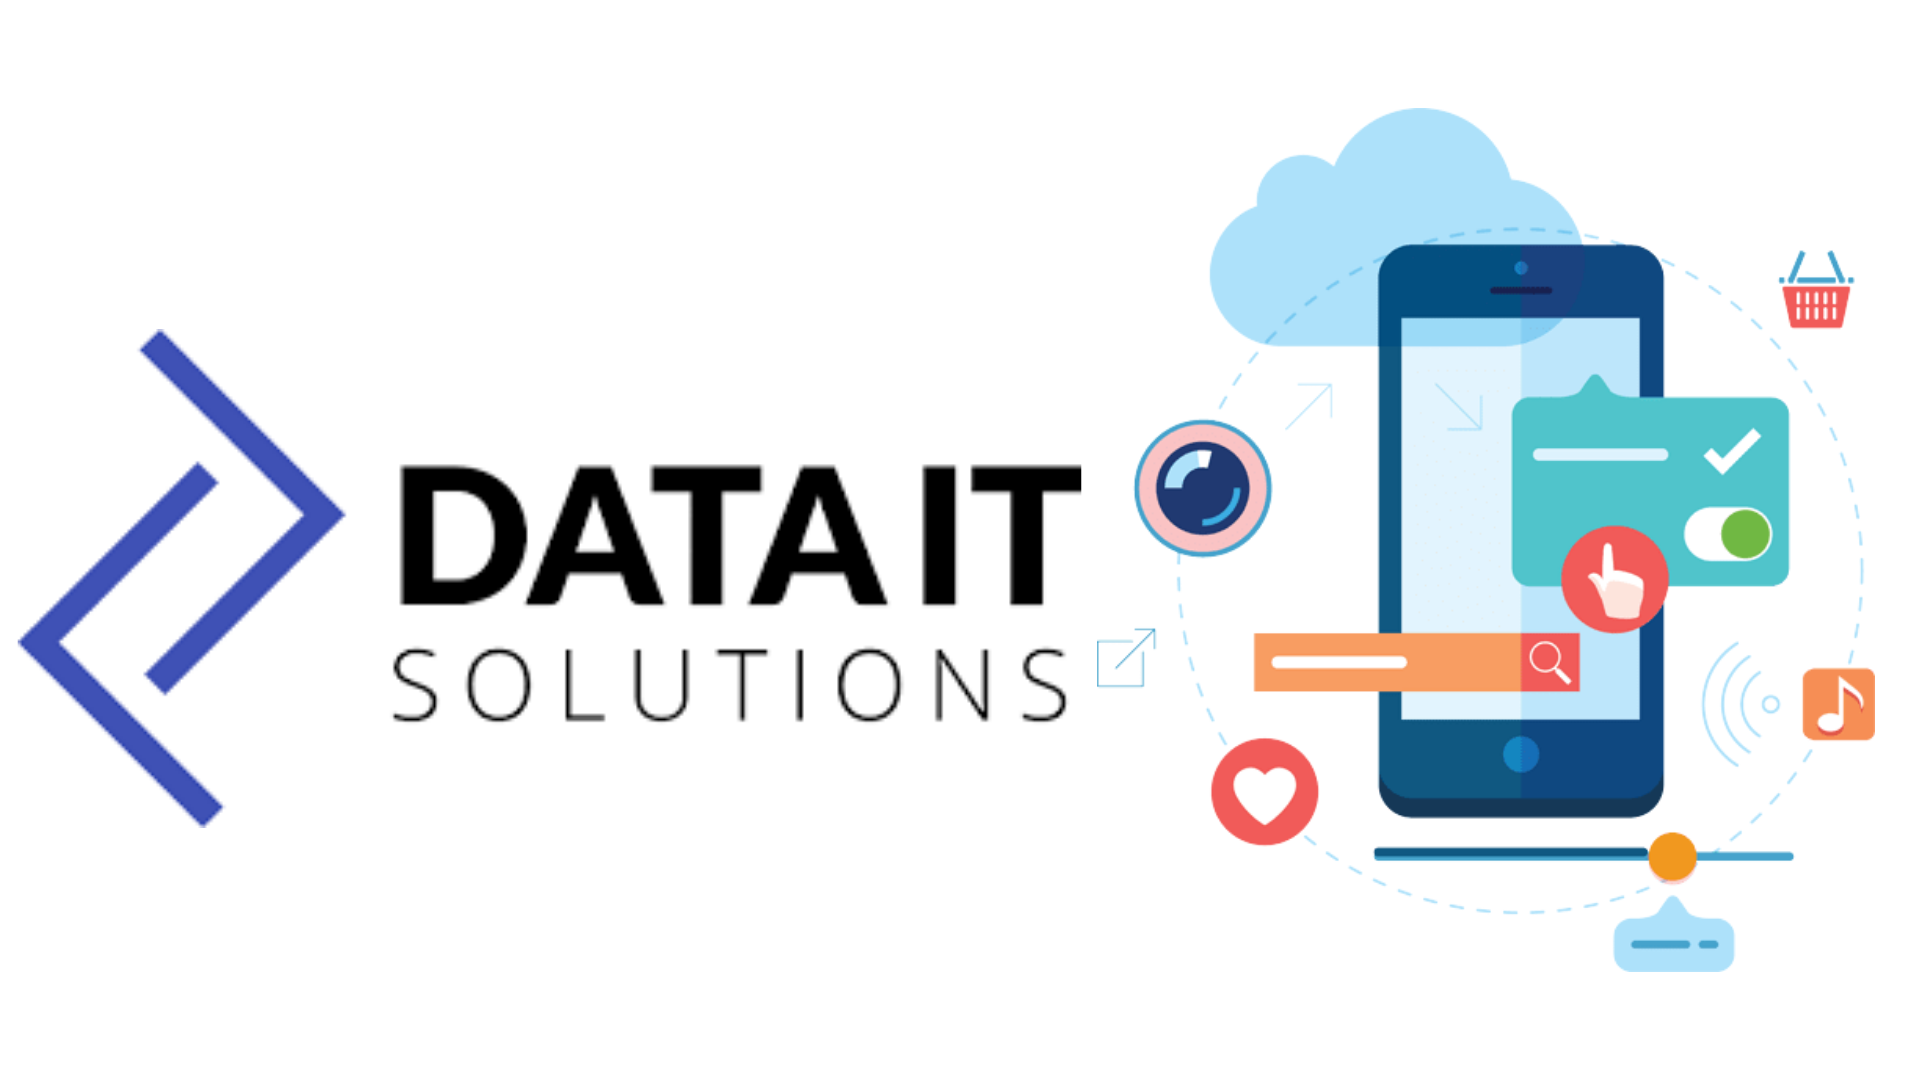 DataIT Solutions